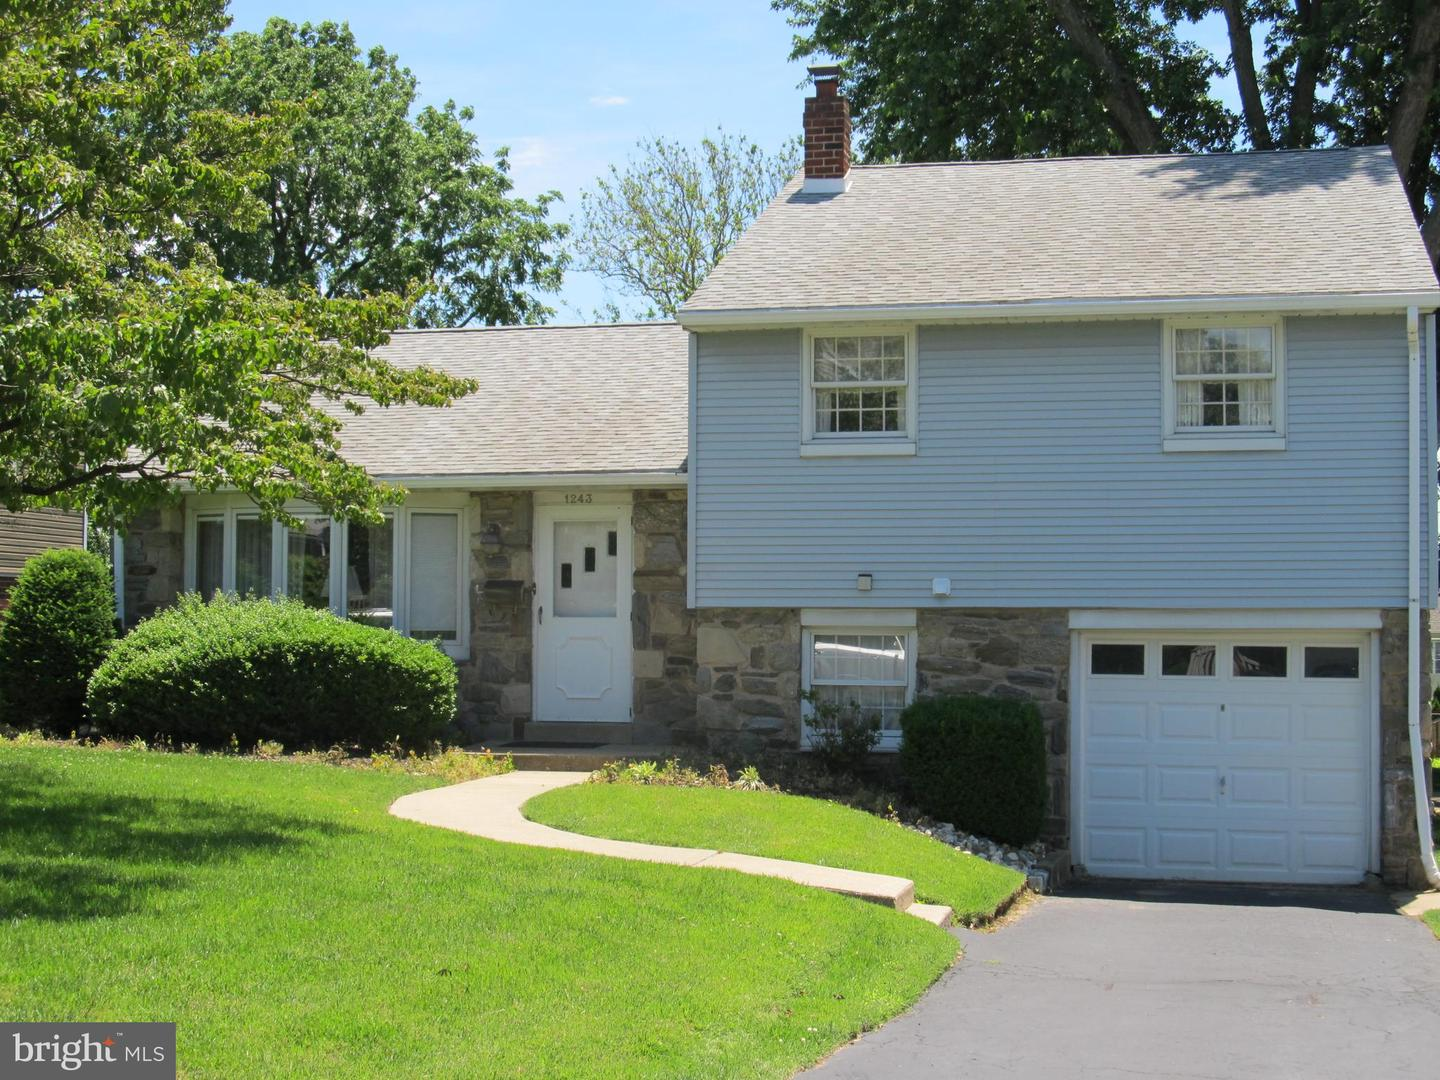 1243 Dill Road Havertown, PA 19083